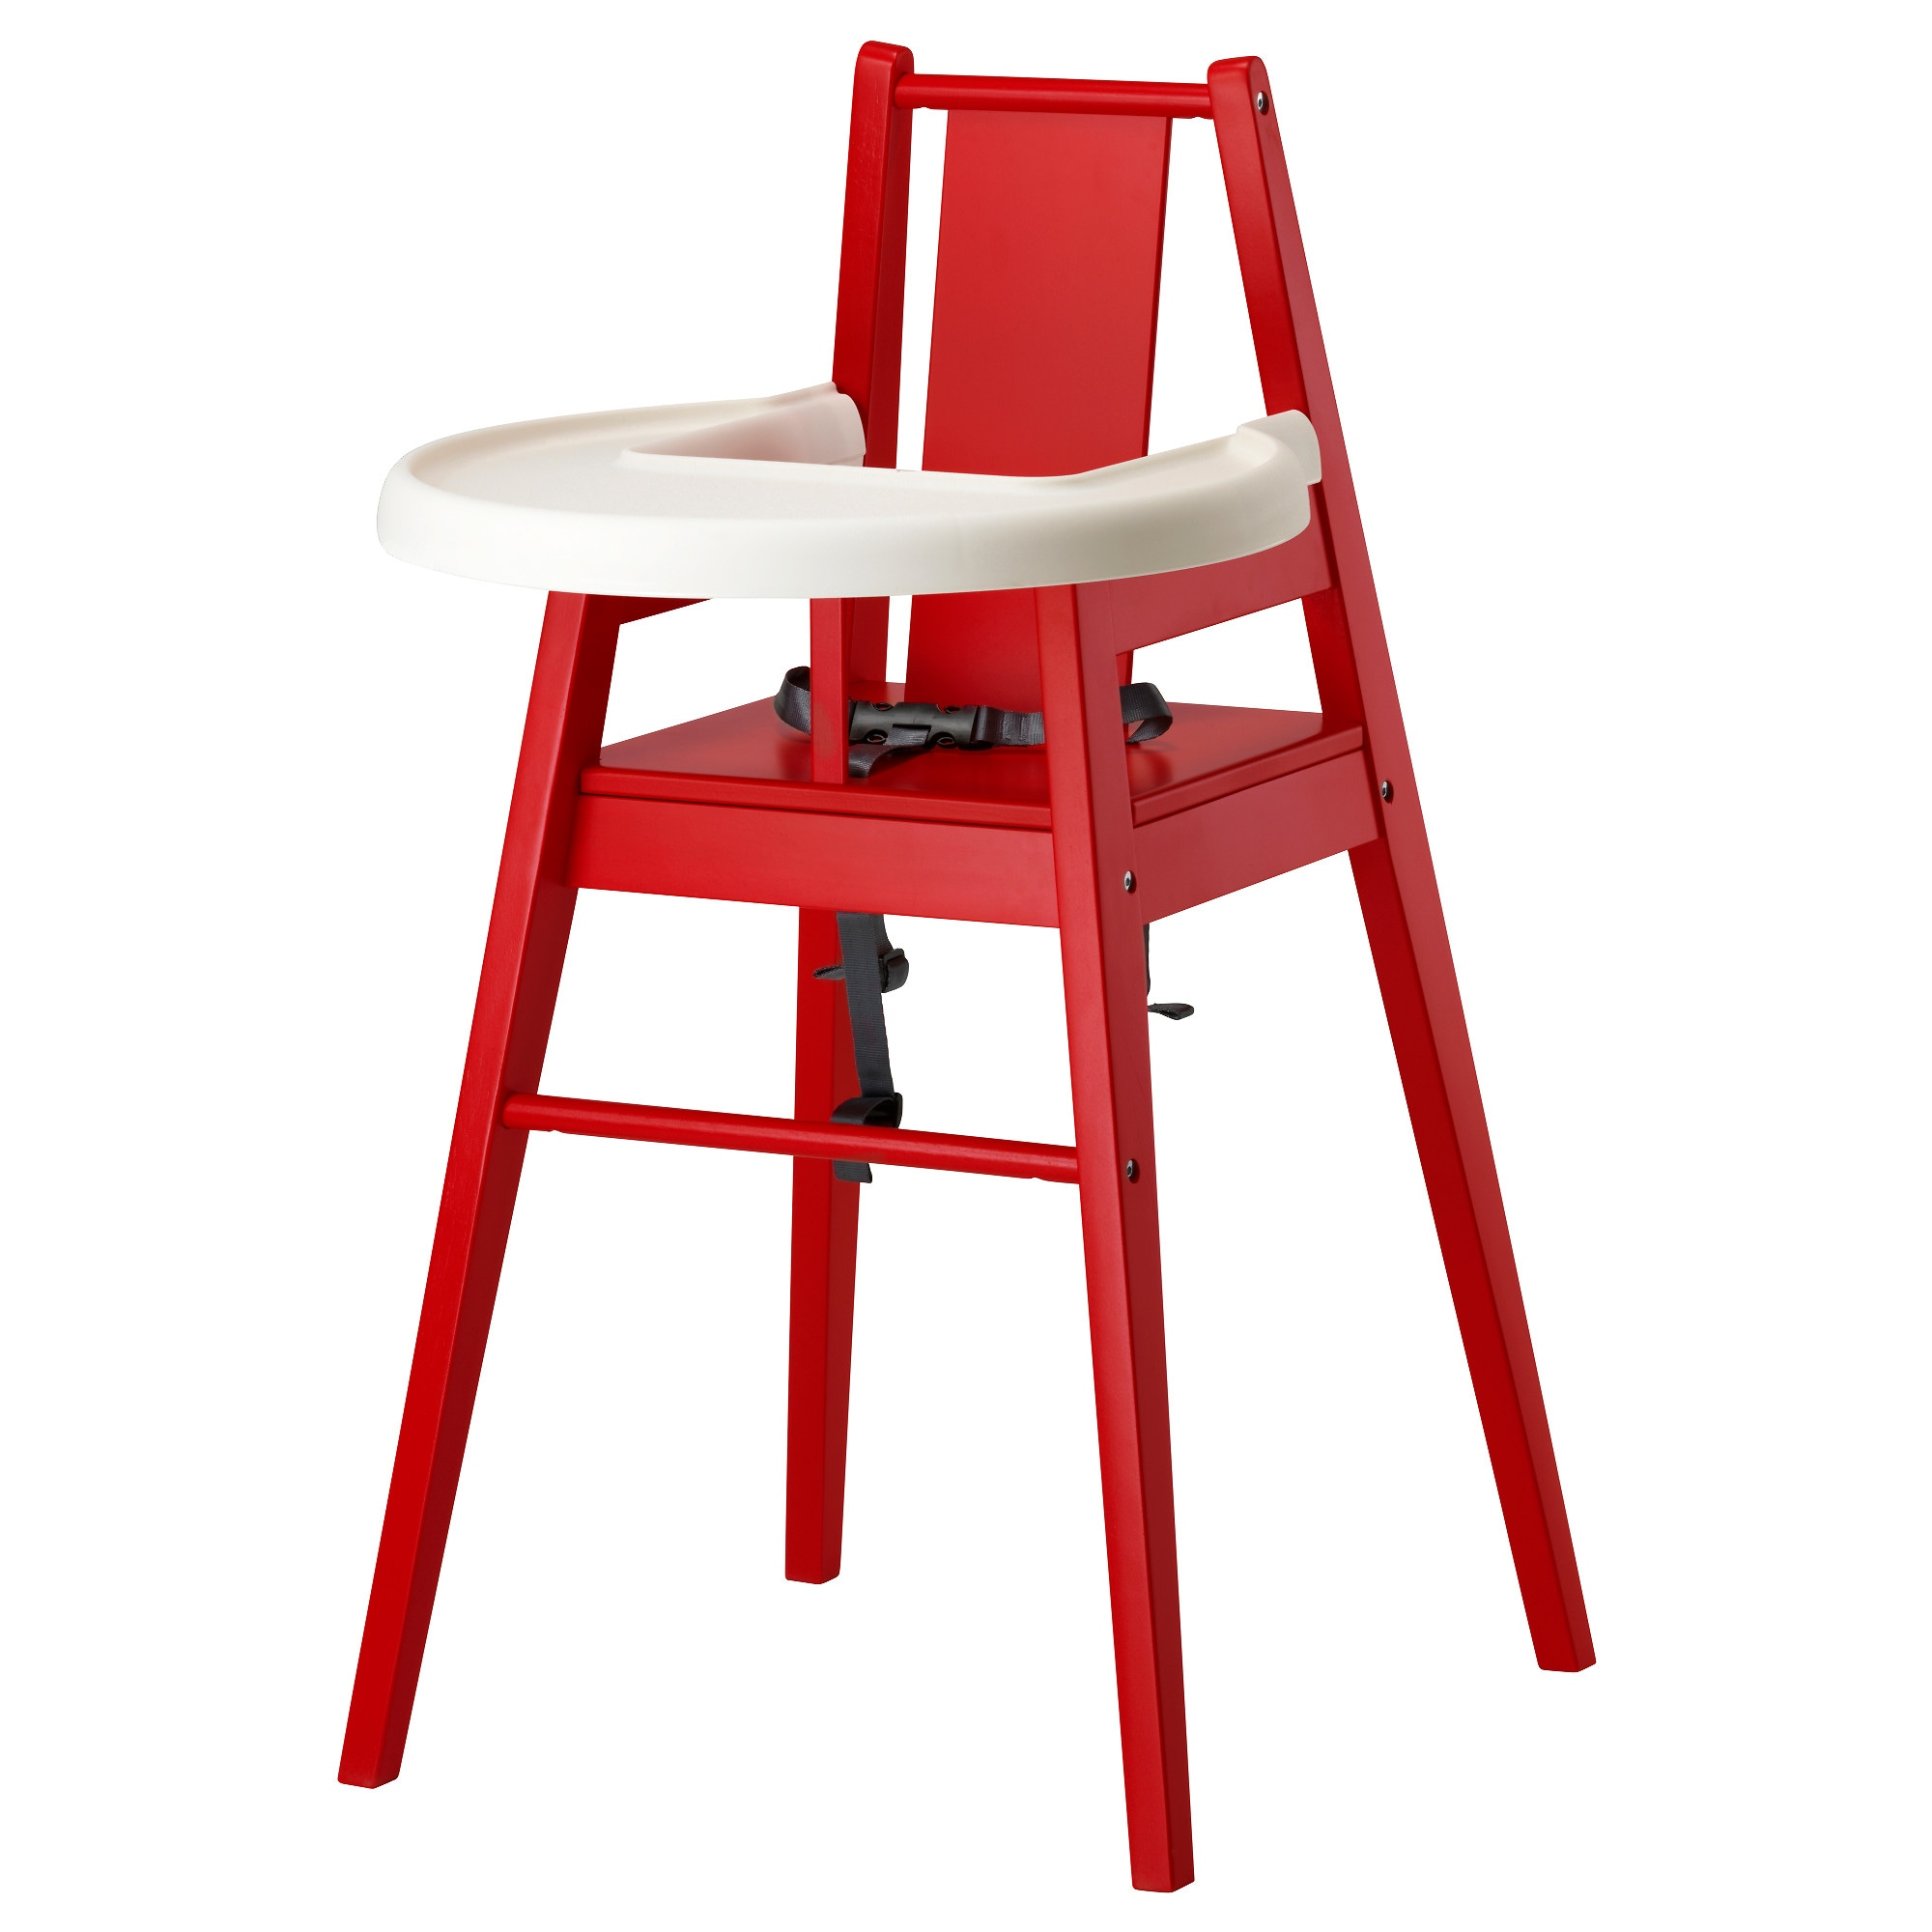 Baby eating chair attached to table - Bl Mes Highchair With Tray Red Width 20 1 8 Depth 21